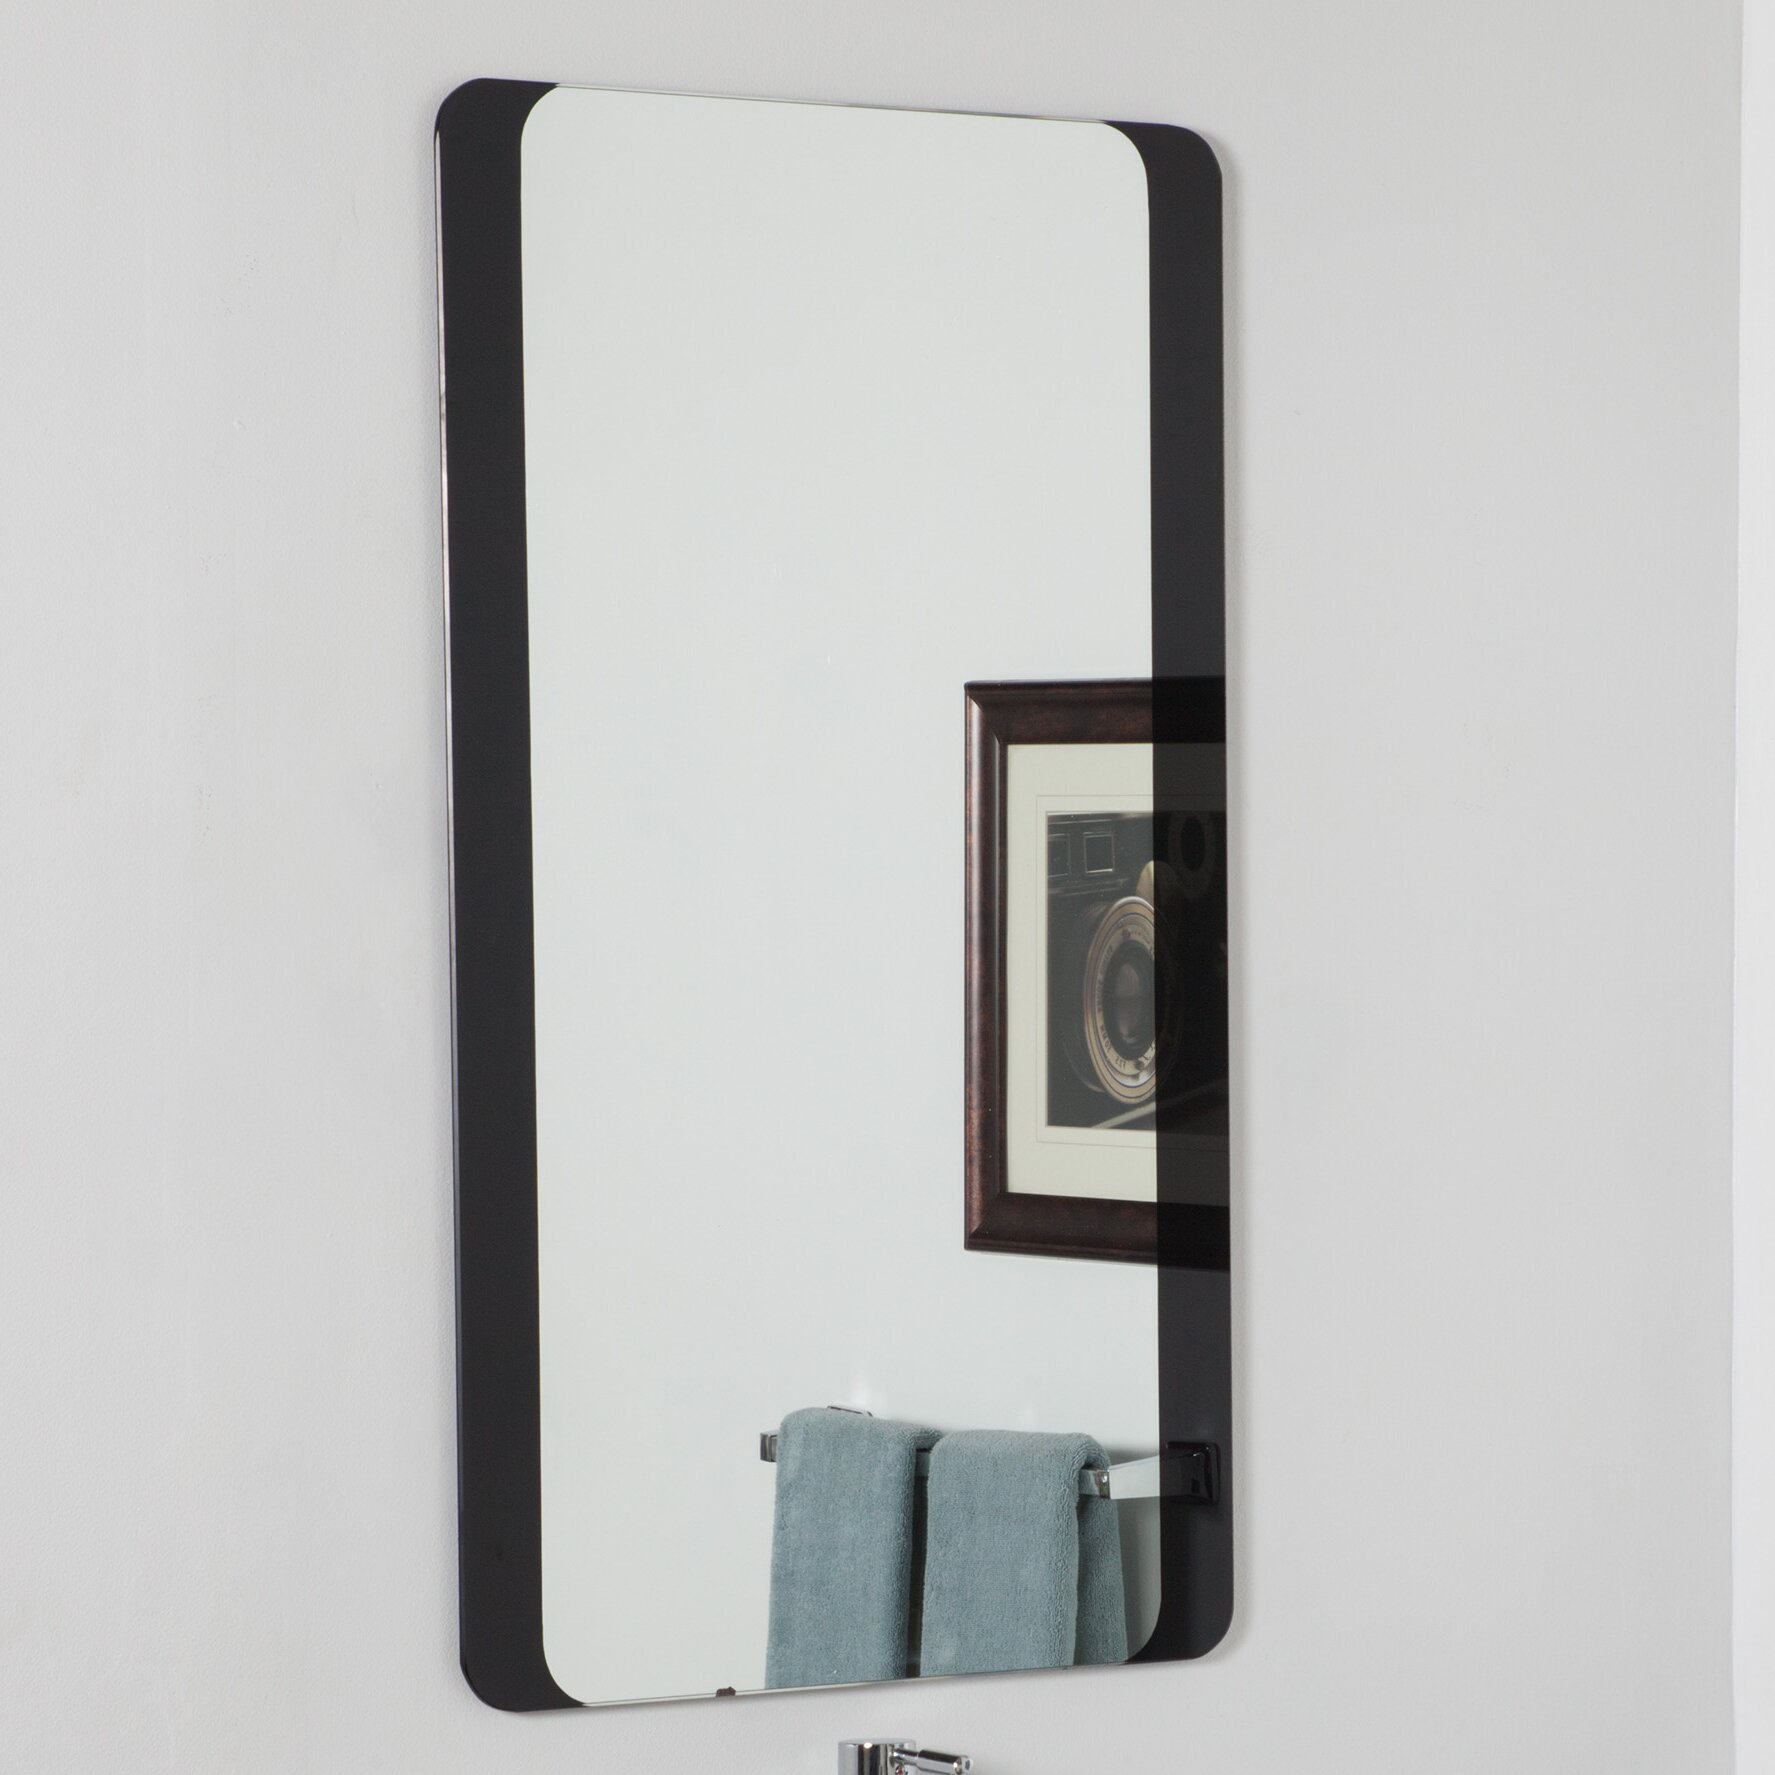 Decor wonderland large wall mirror reviews wayfair for Mirror decor